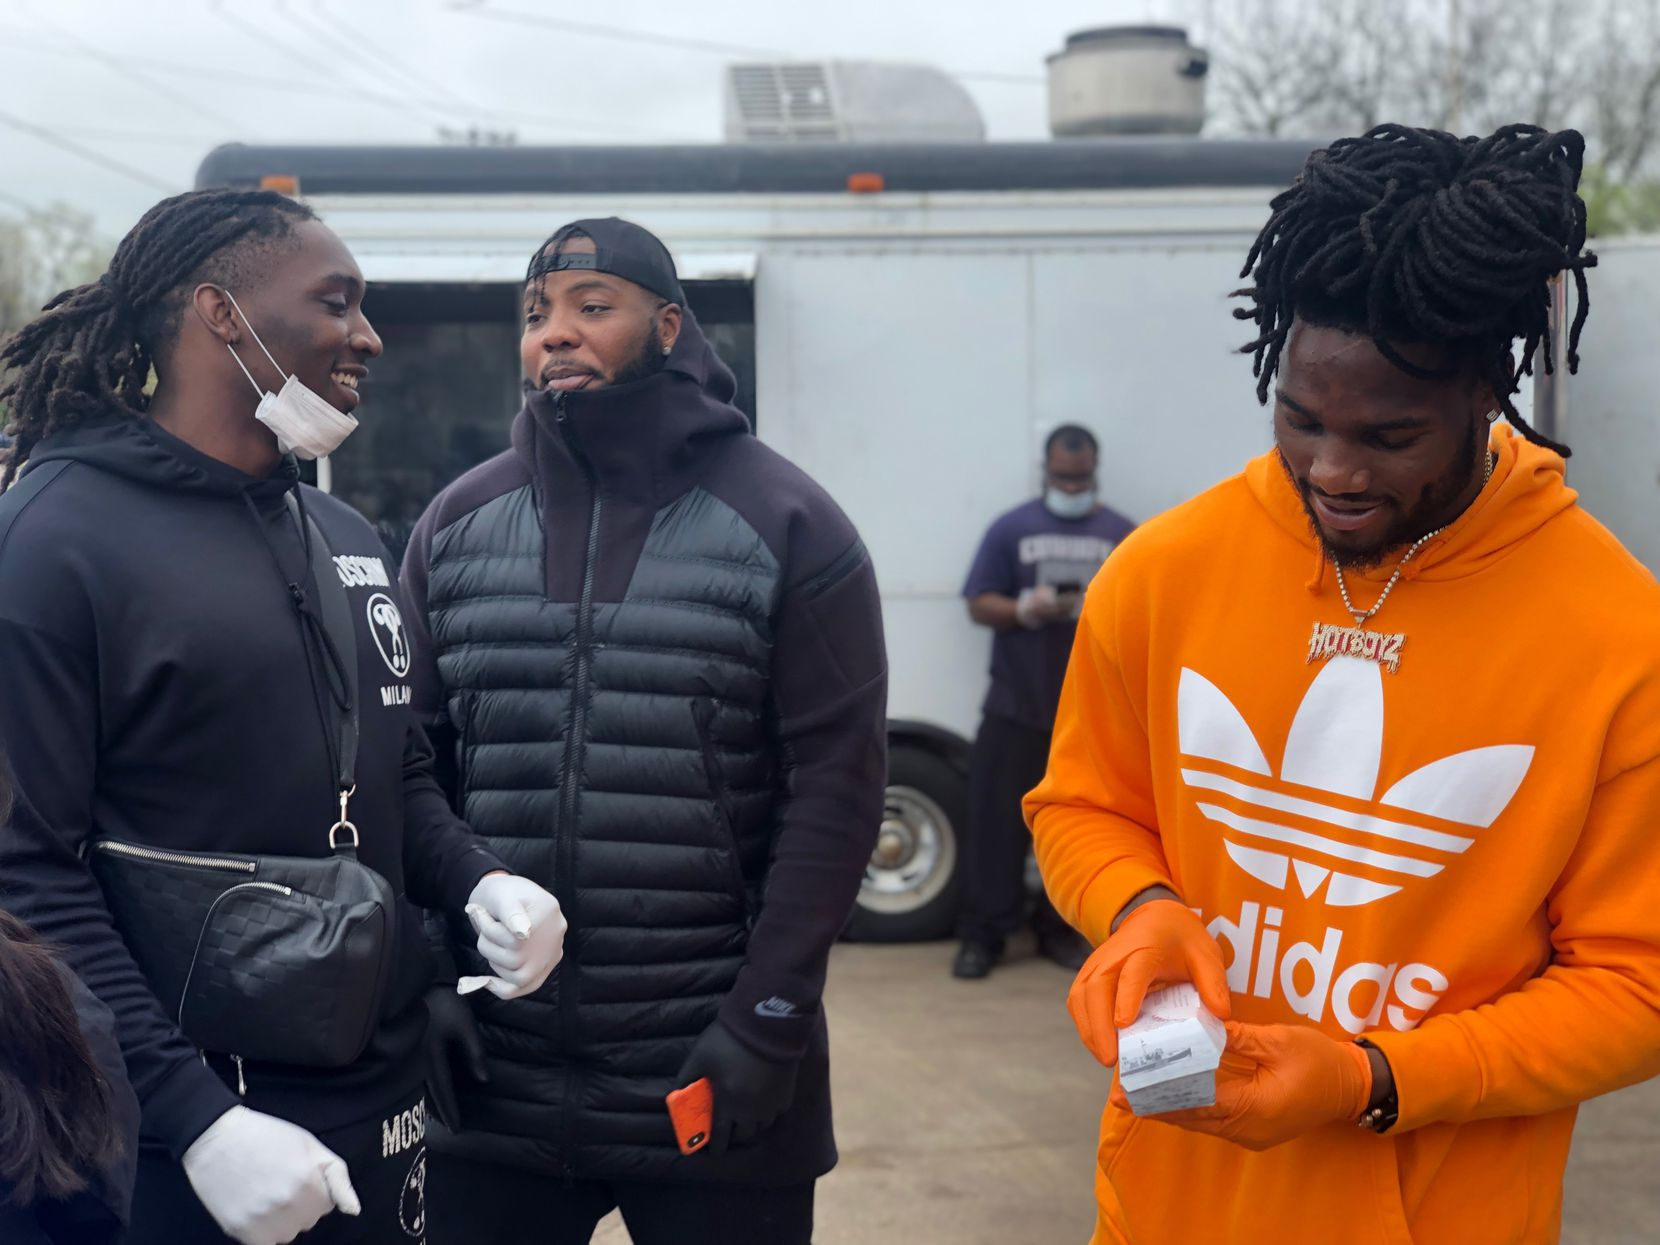 Cowboys defensive end DeMarcus Lawrence (left), defensive lineman Daniel Ross (center) and linebacker Jaylon Smith (right) oversaw an event where food vendors were commissioned to serve meals to local first responders at no charge at Seago Pantry in Dallas on March 22, 2020.